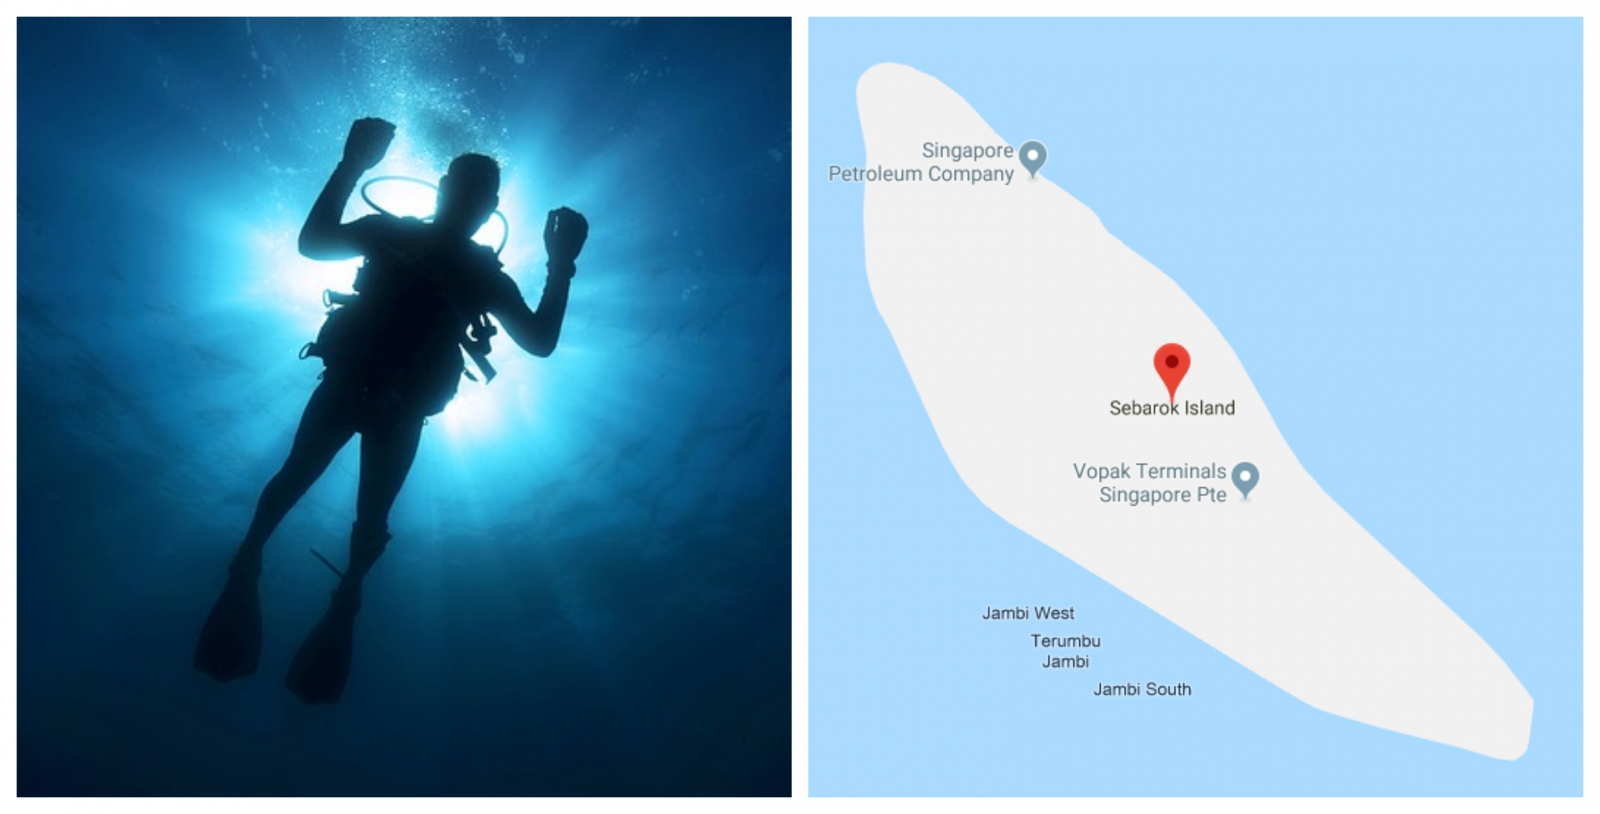 Singapore Commercial Diver 27 Accidentally Dies In